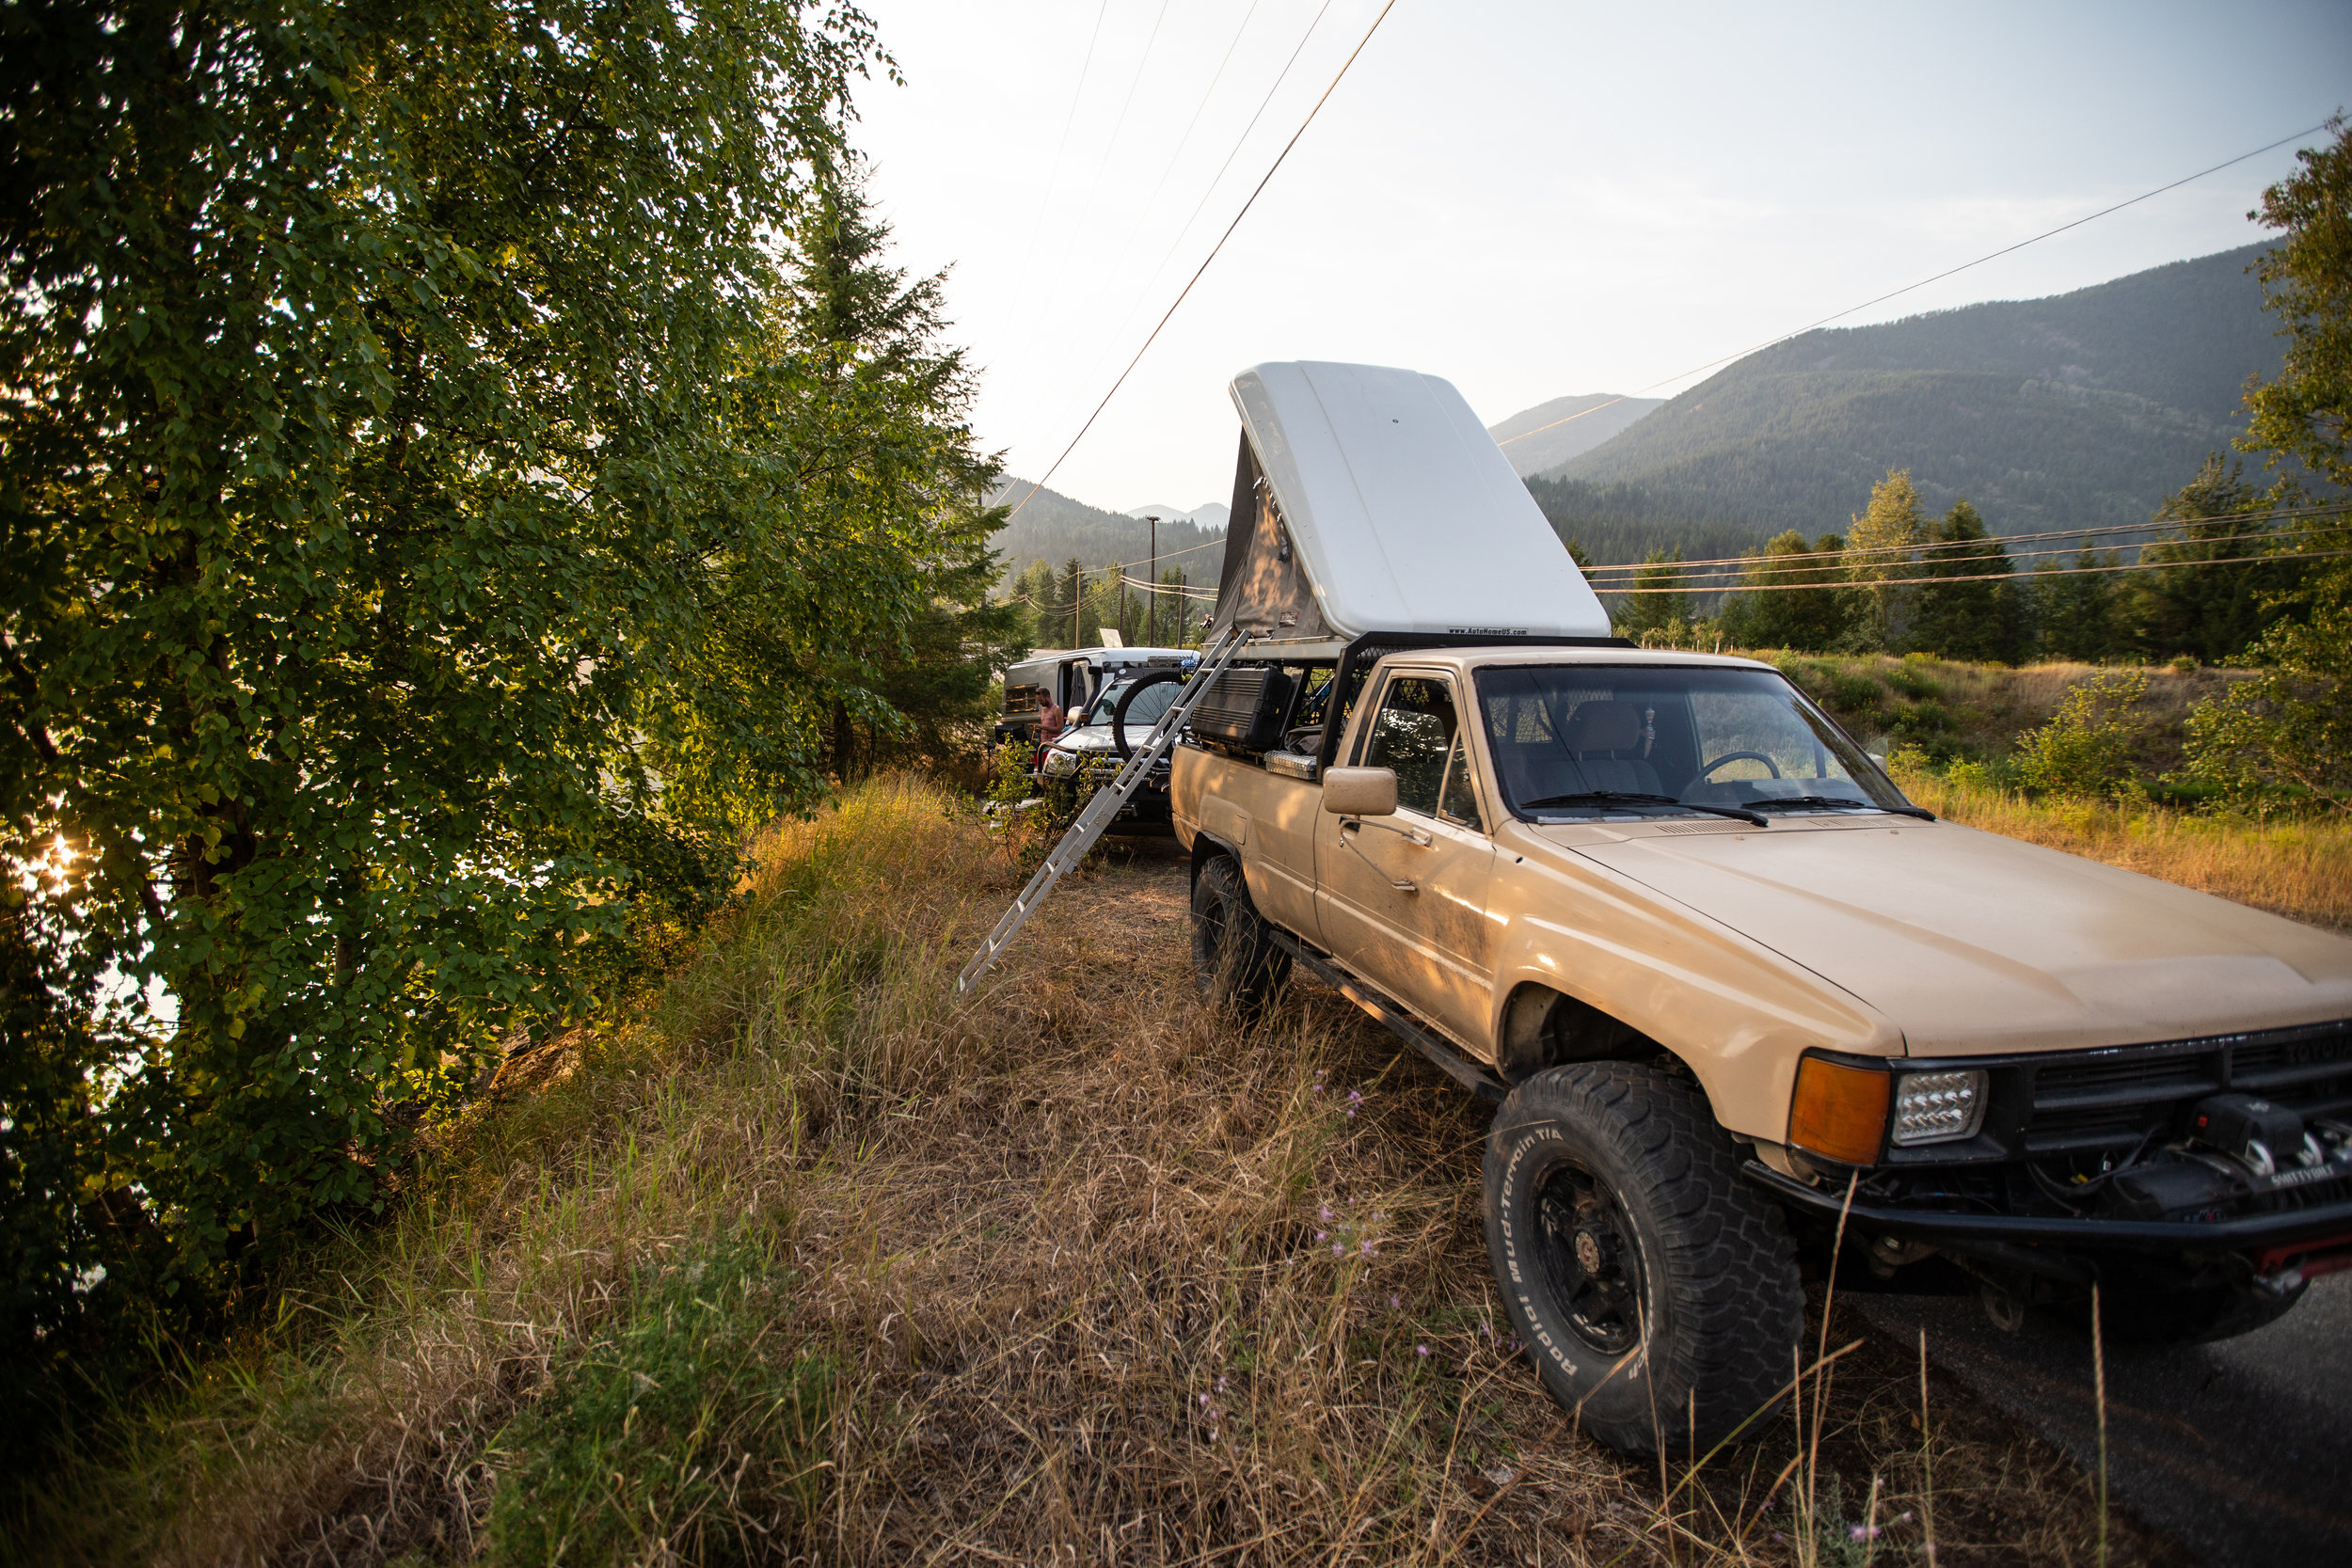 After years of meet-up attempts I finally caught up with Travis Perry and camped with him just outside of Nelson, BC.